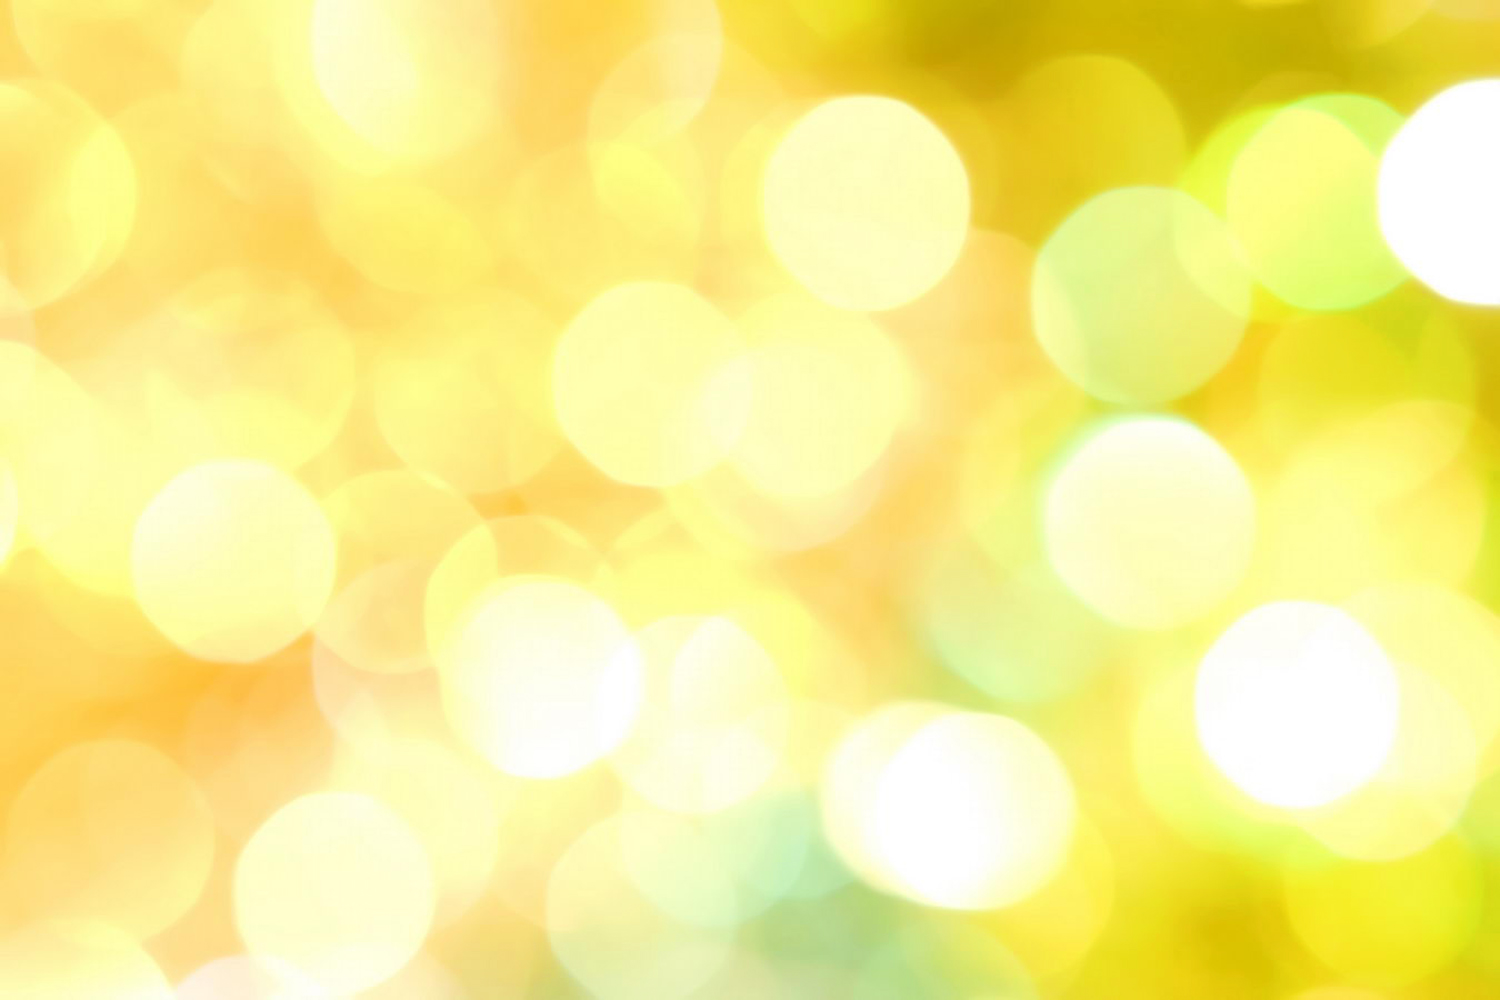 blur background, Abstract, Holiday, Year, Xmas, HQ Photo